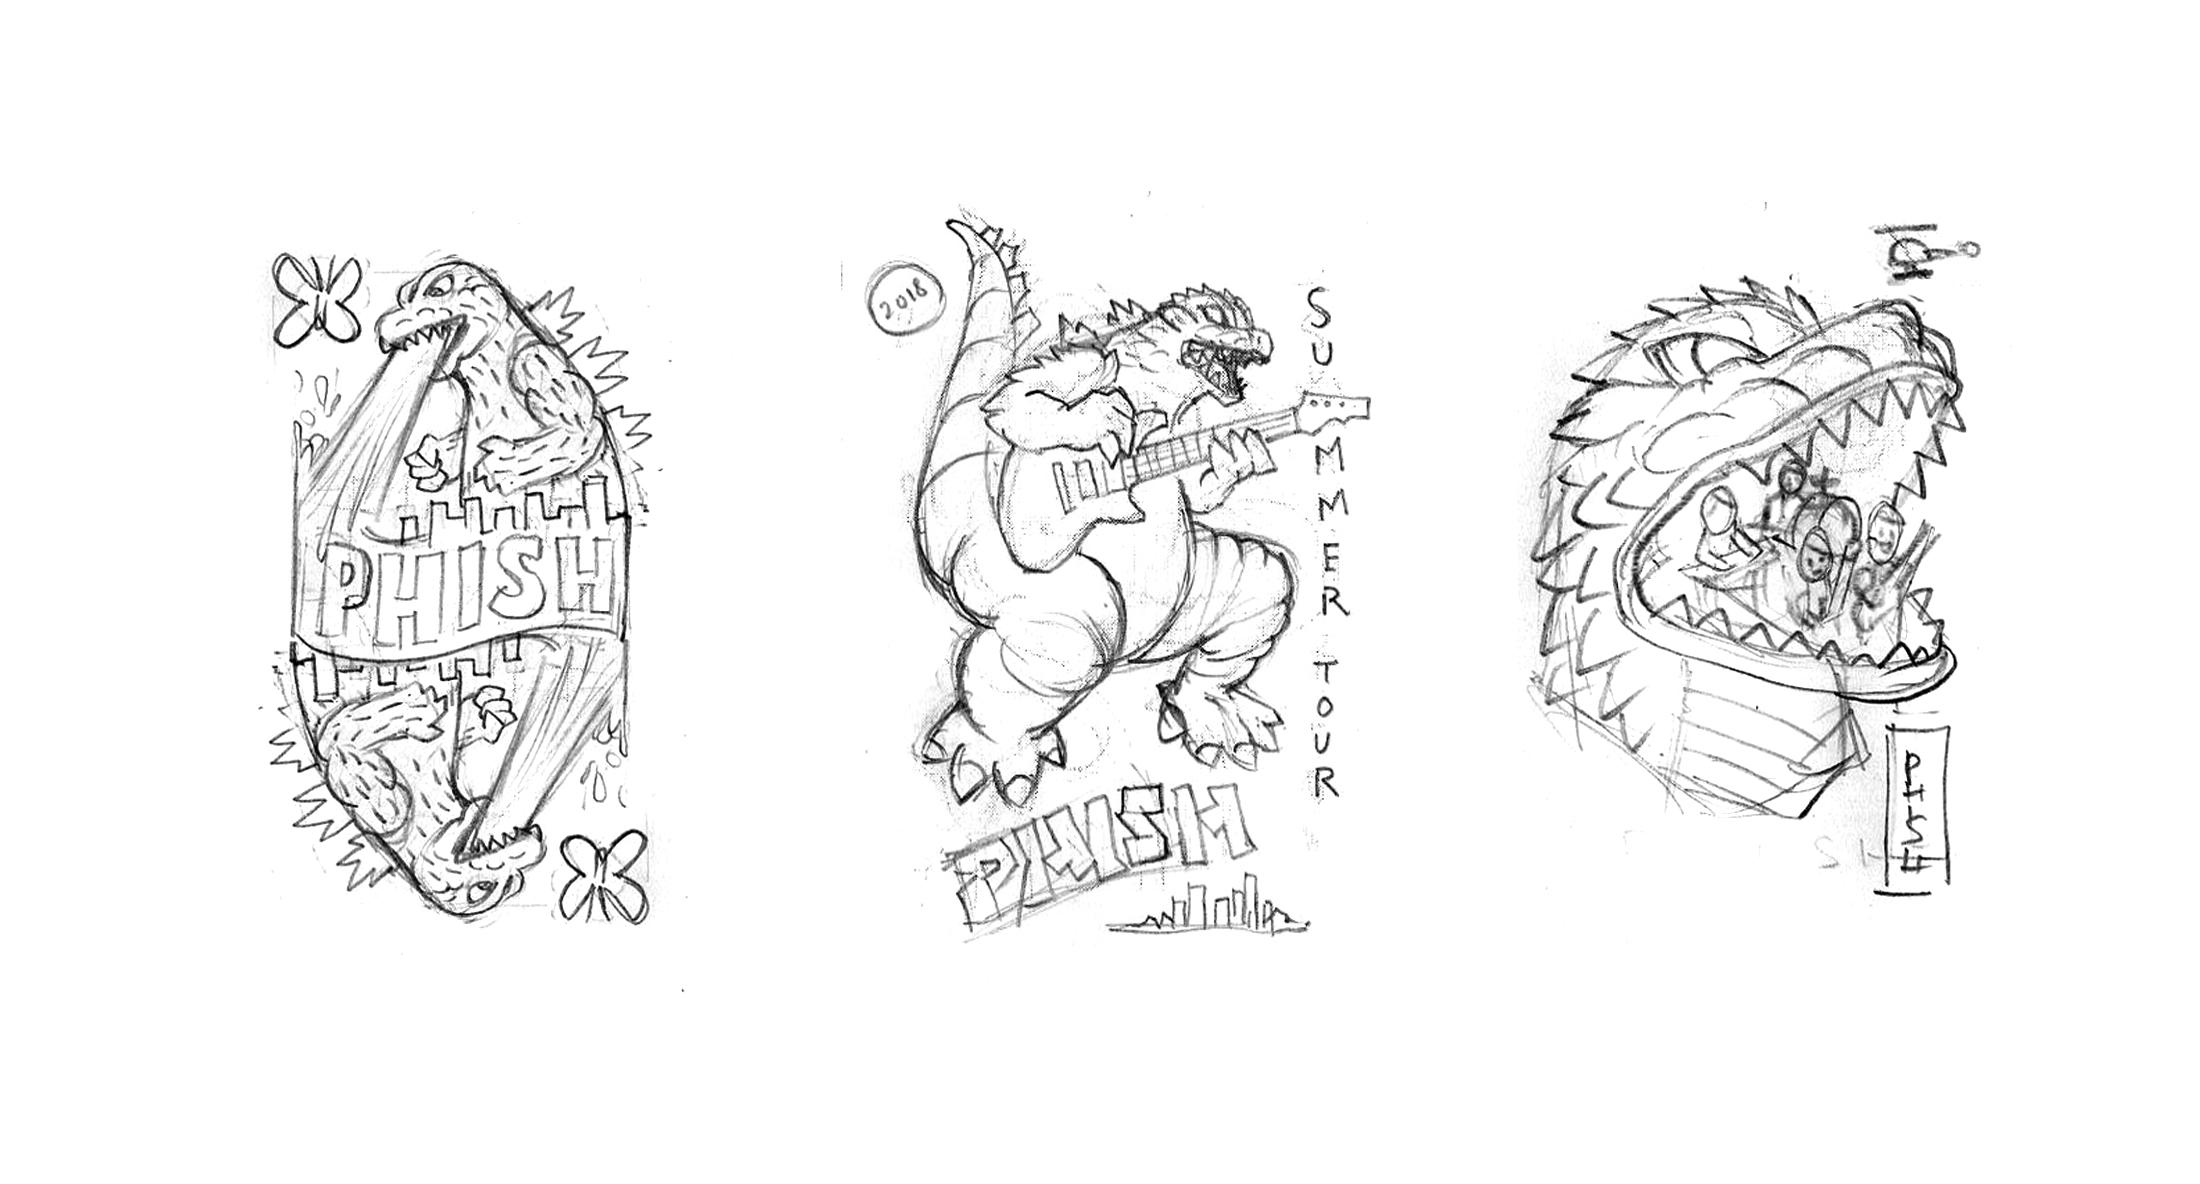 Phish_Godzilla_sketches03.jpg